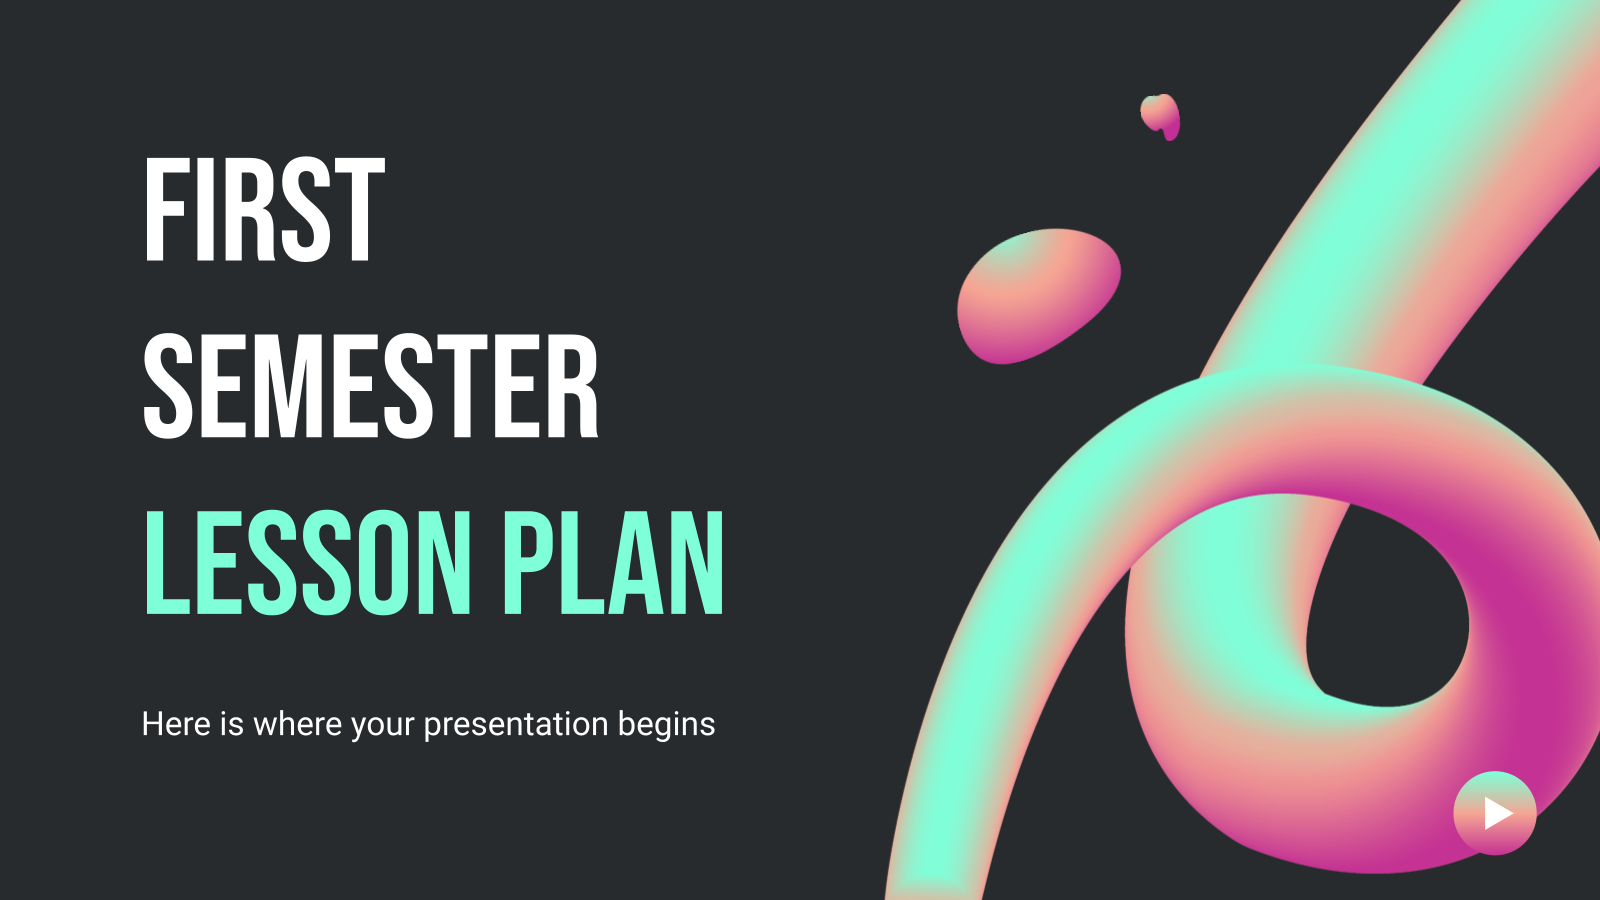 First Semester Lesson Plan presentation template